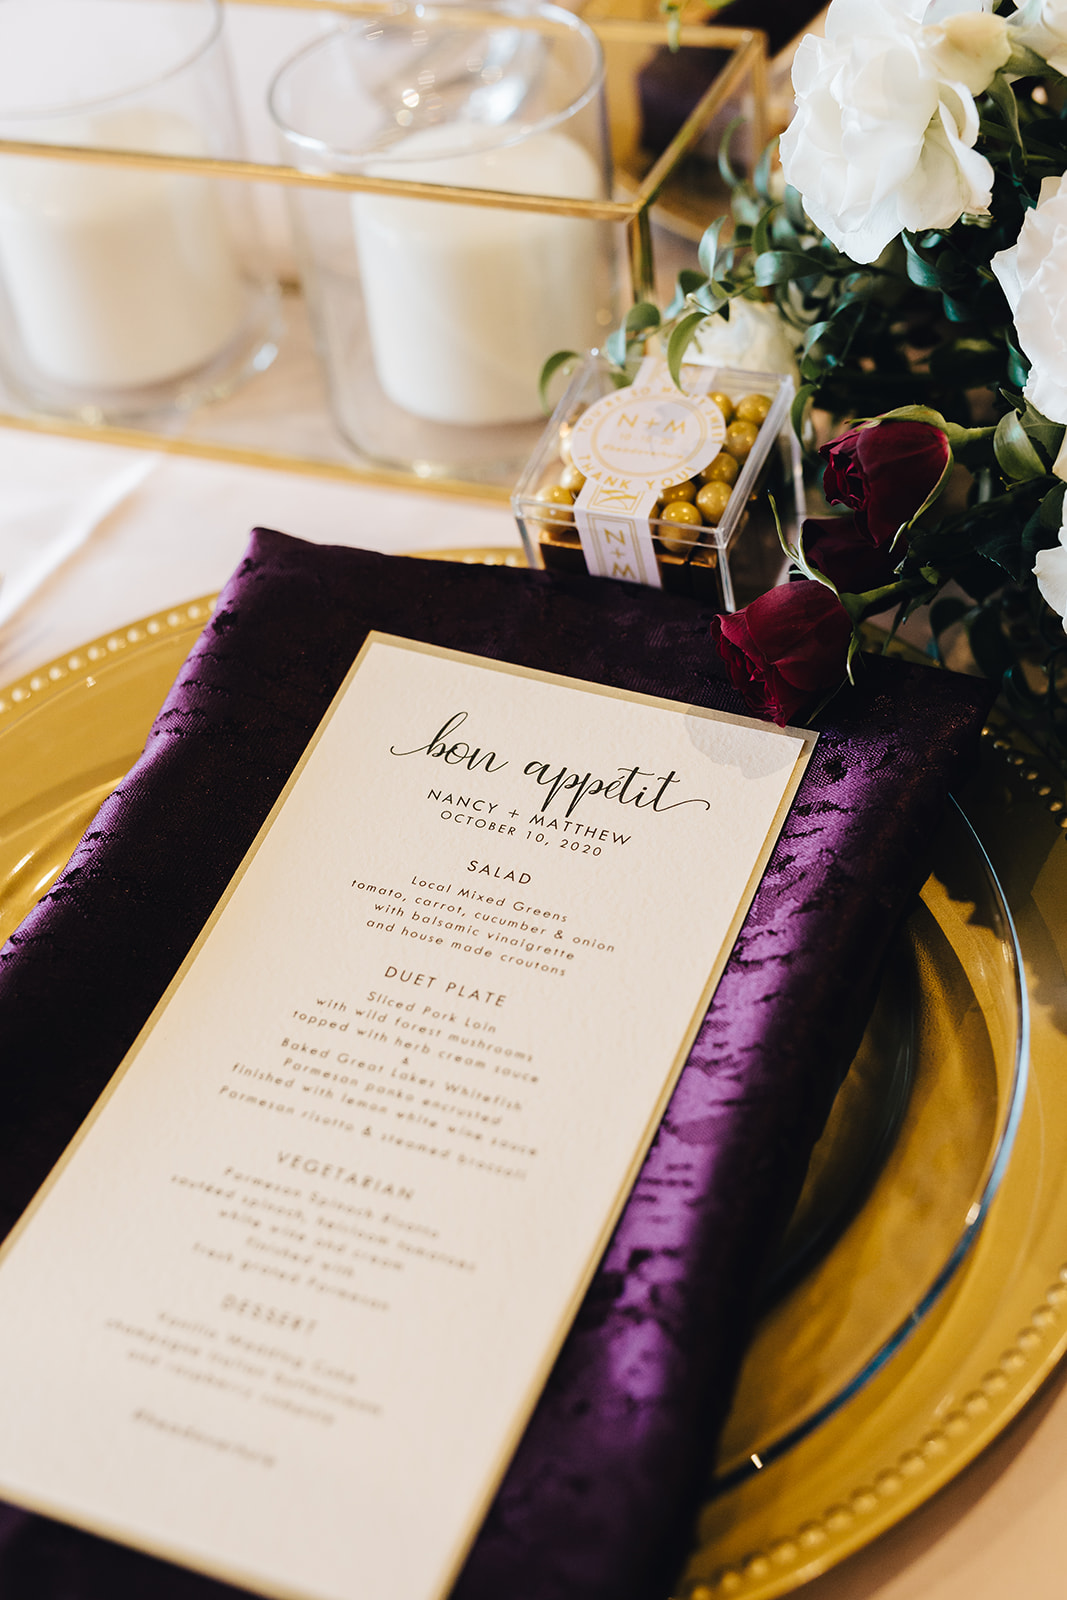 West Bay Beach wedding food menu and plate decor